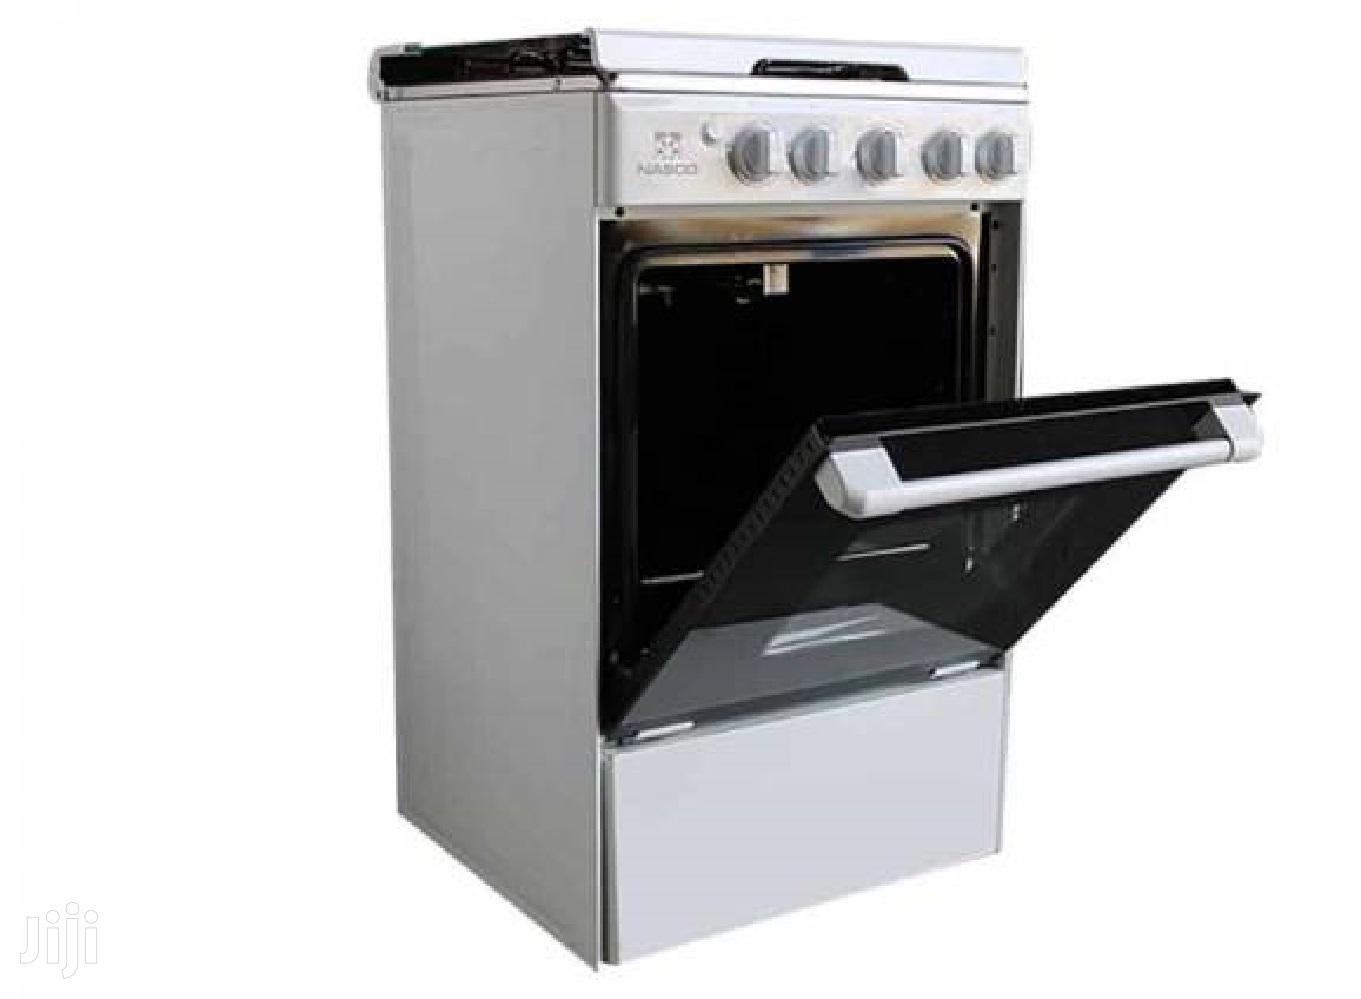 Nasco 4 Burner Gas Cooker With Oven Grill